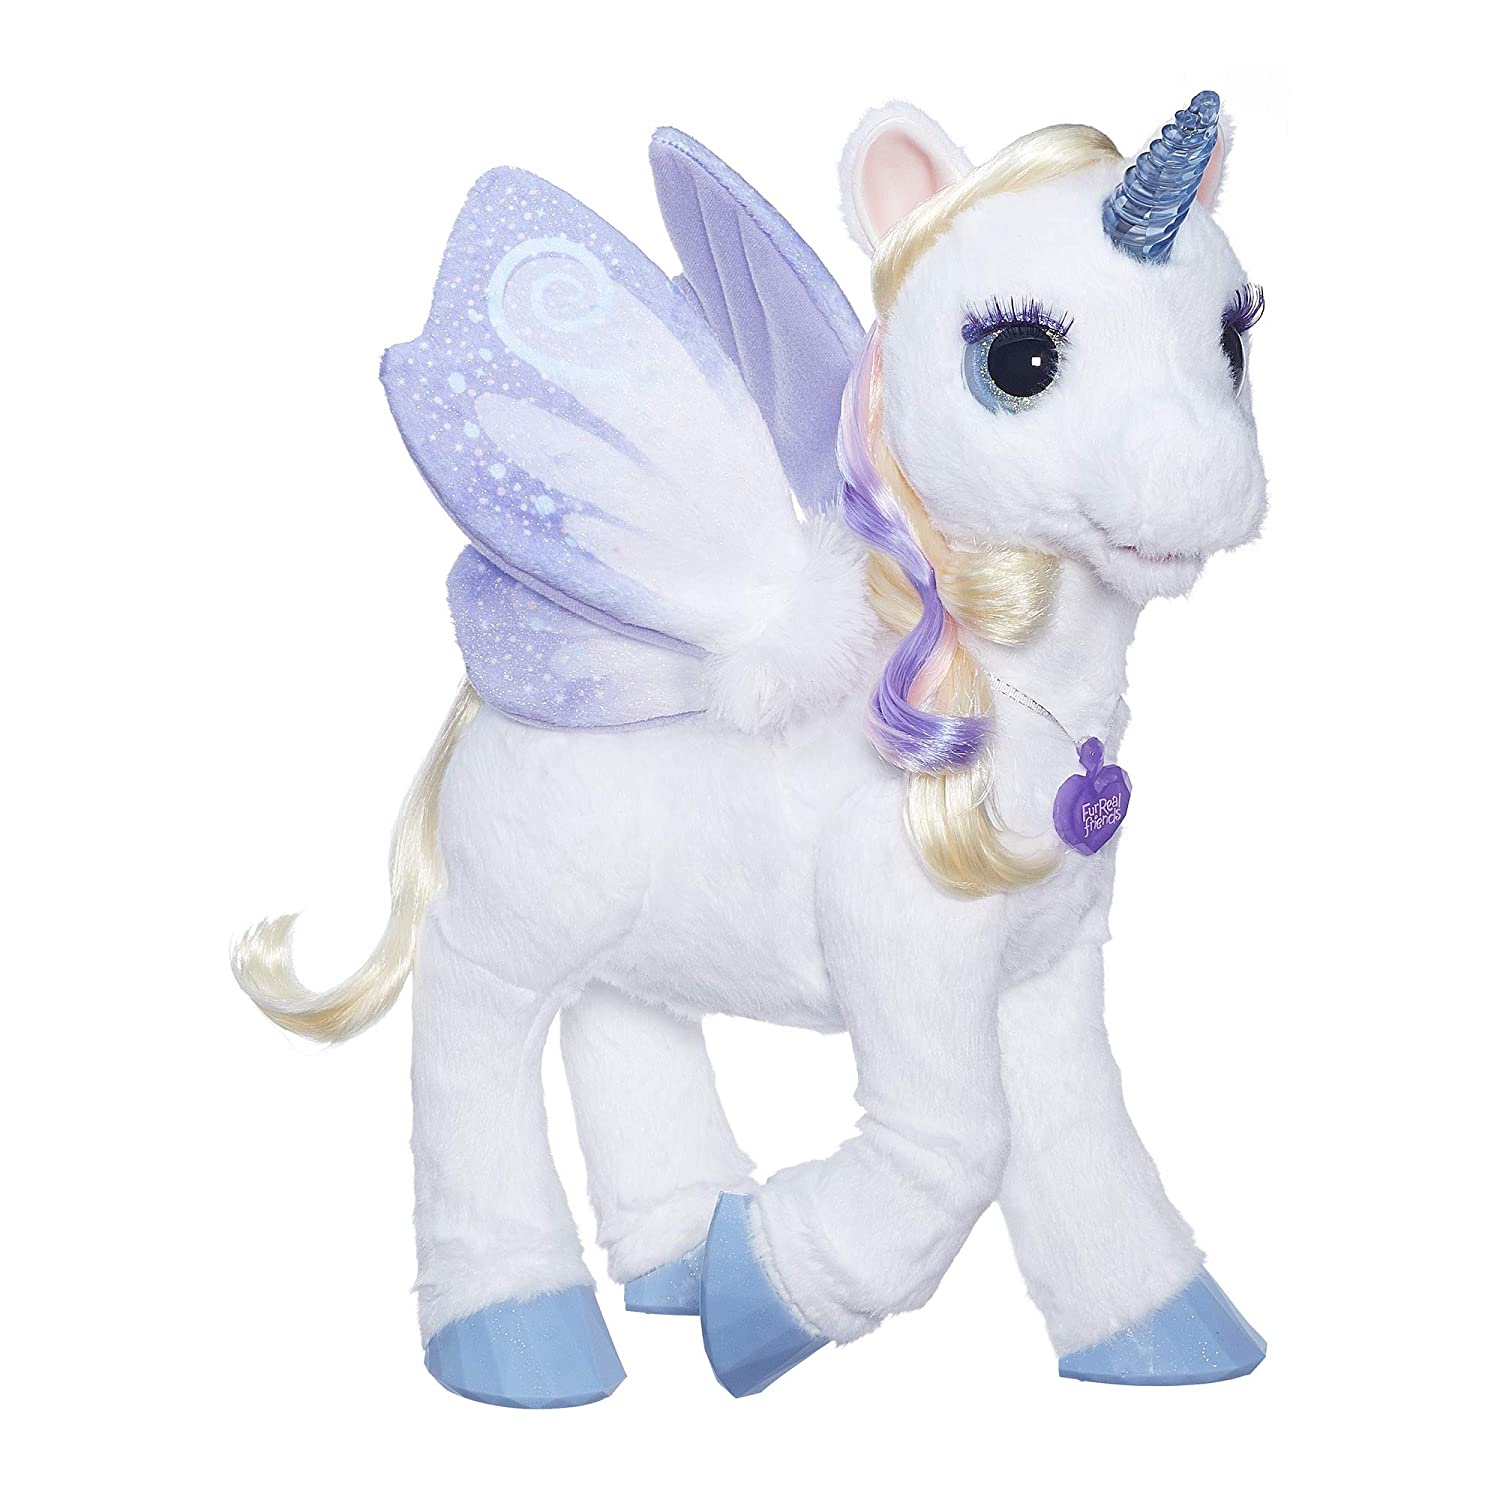 furReal StarLily My Magical Unicorn Interactive Plush Pet Toy Light up Horn Ages 4 and Up Amazon Exclusive